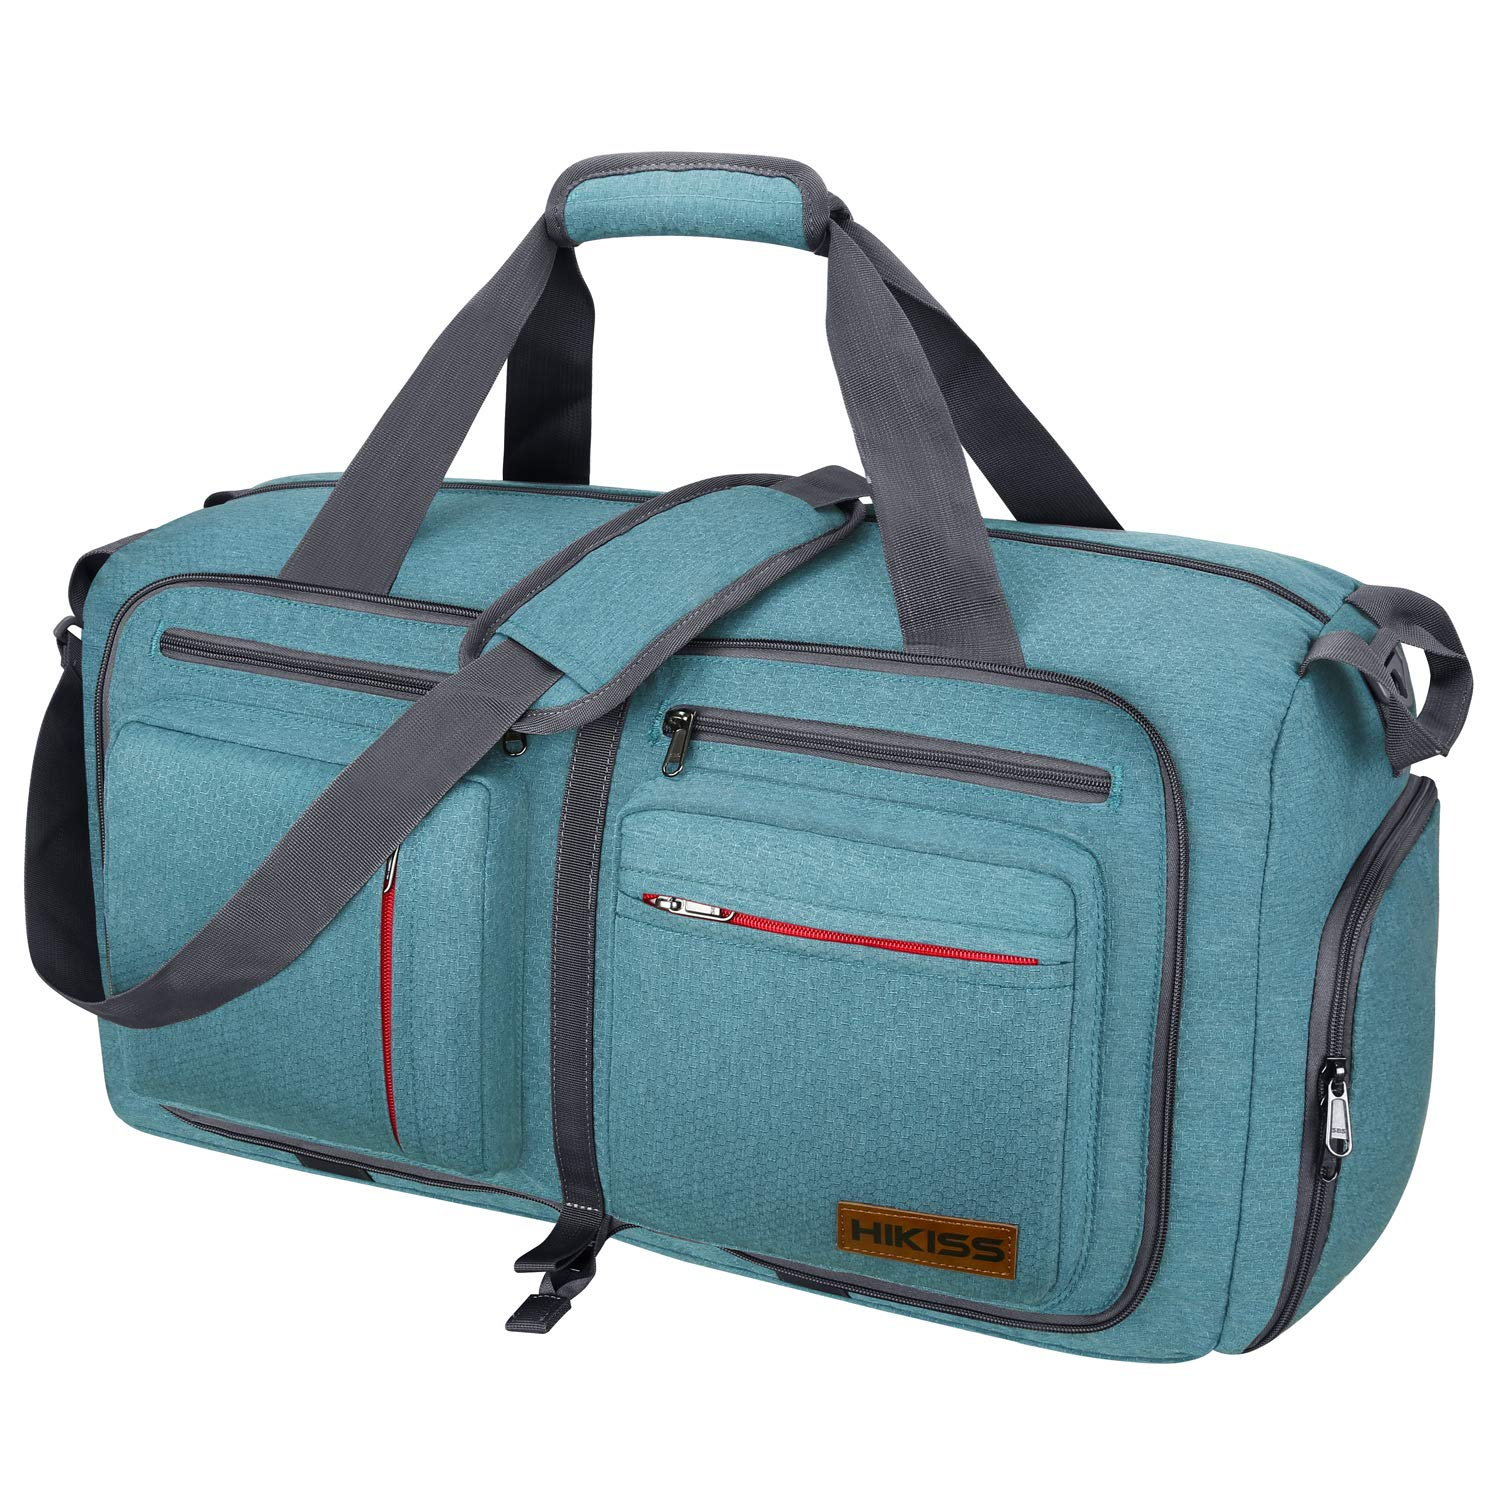 Travel Duffel Bag, 115L Packable Duffle Bag with Shoes Compartment Foldable Weekender Bag for Men Women Water-proof & Tear Resistant HIKISS-Green